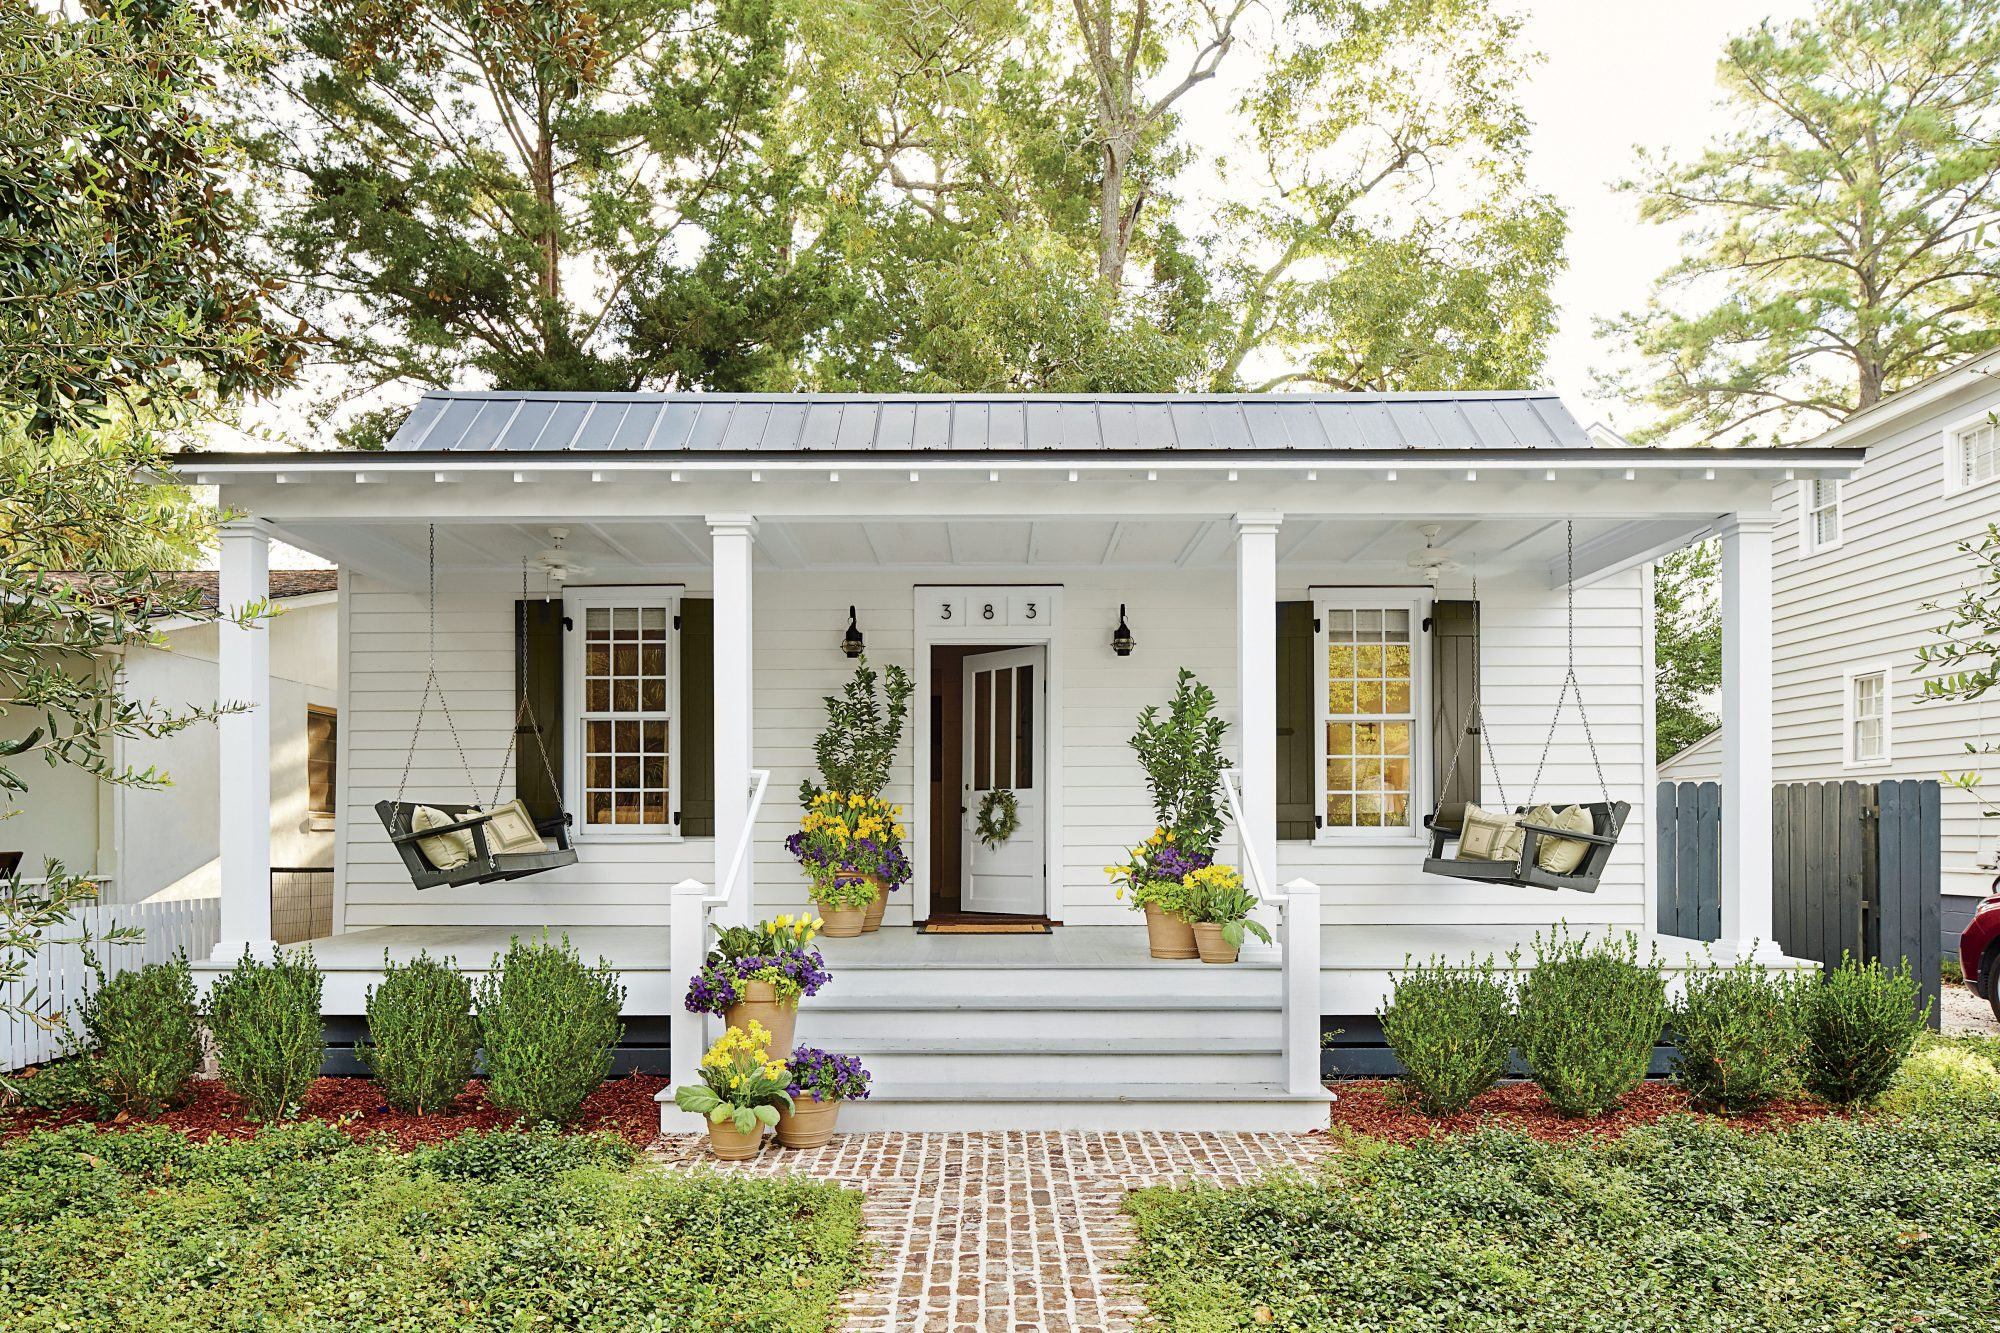 Gibson Cottage in South Carolina